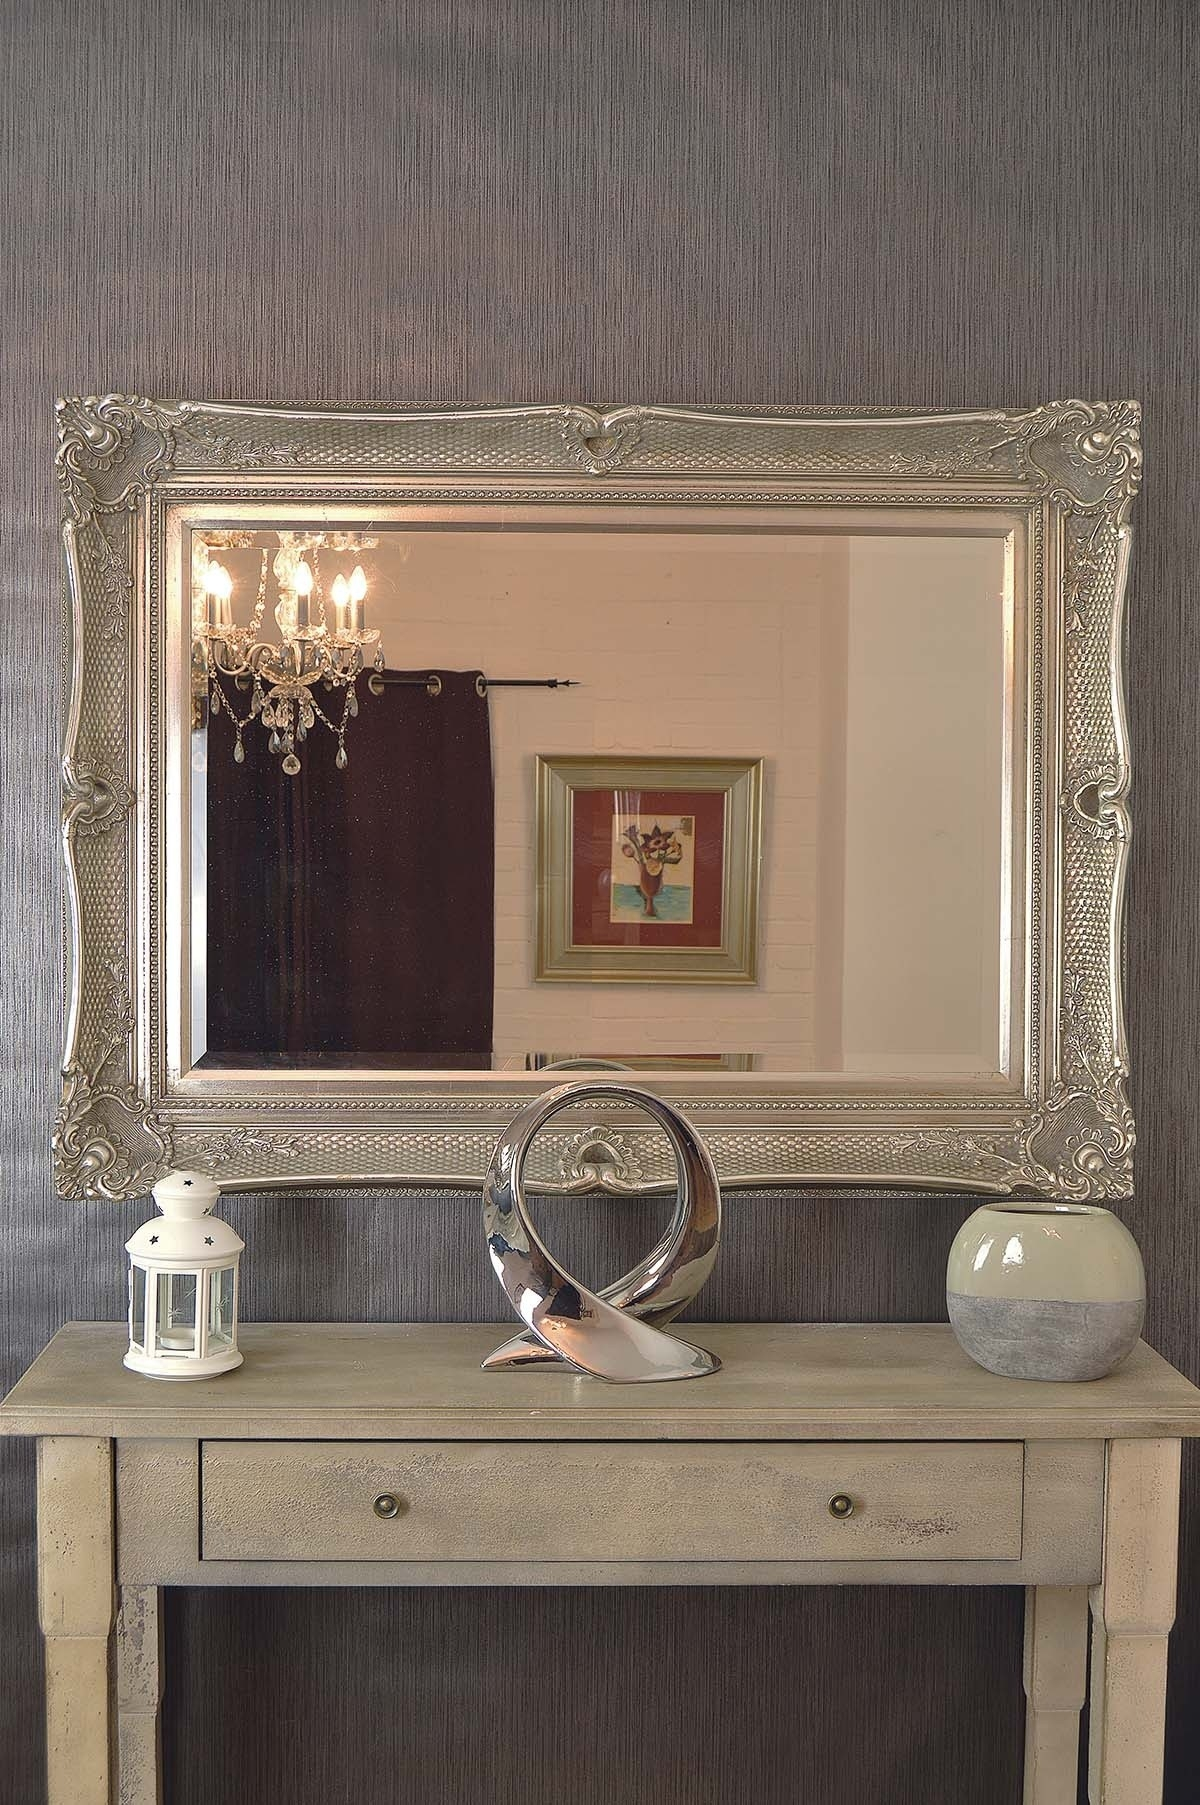 Large Antique Style Silver Ornate Wood Wall Mirror 4ftx3ft Throughout Large Ornate Mirrors For Wall (Image 6 of 15)